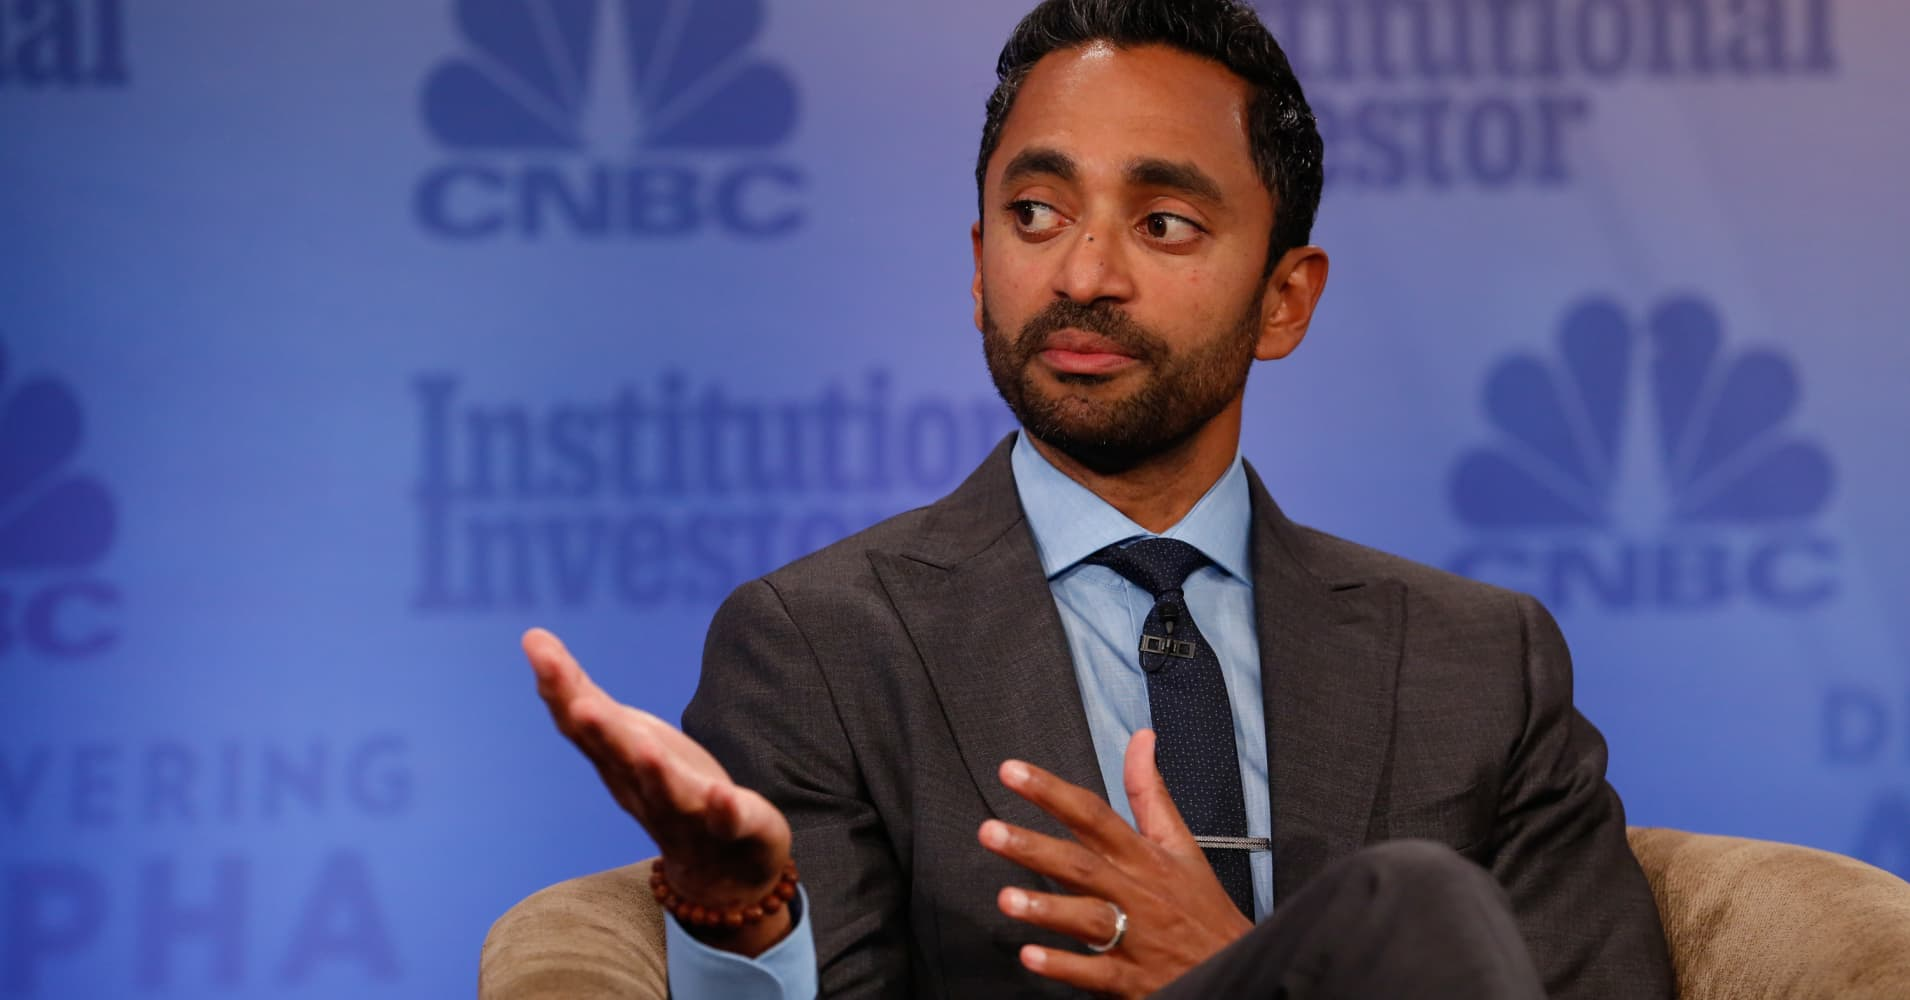 Ex-Facebook executive Chamath Palihapitiya: Social media is creating a society that confuses 'truth and popularity'